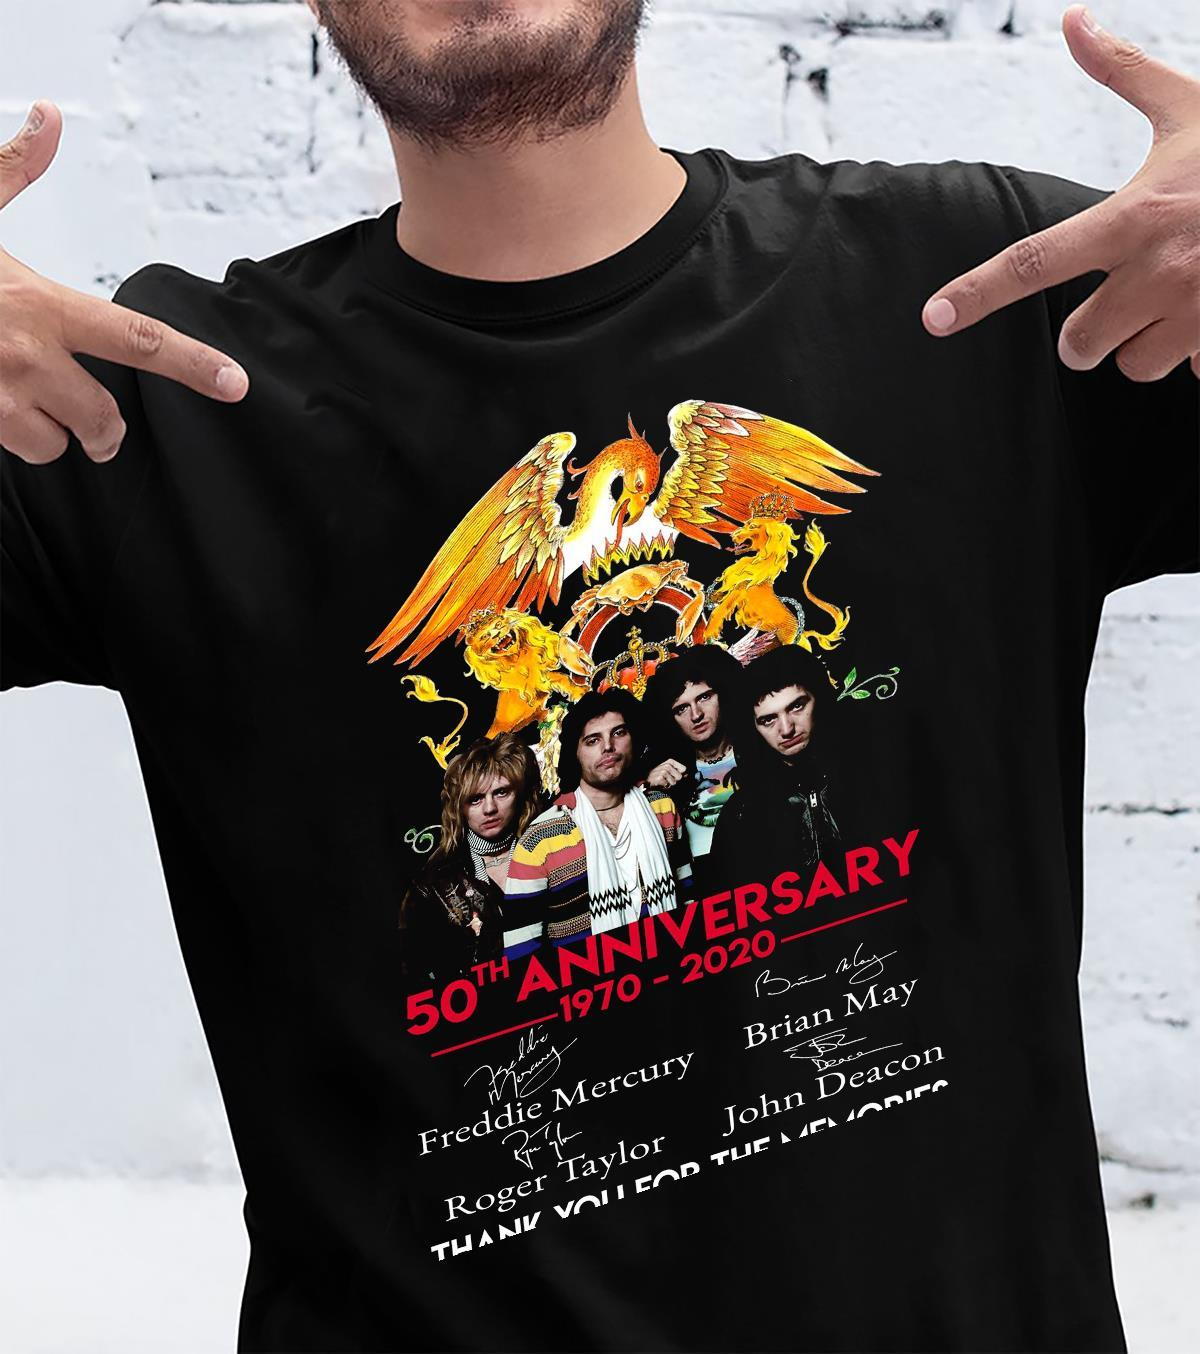 50th Anniversary 1970-2020 Freddie Mercury Brian May Roger Taylor John Deacon Thank You For The Memories Shirt unisex